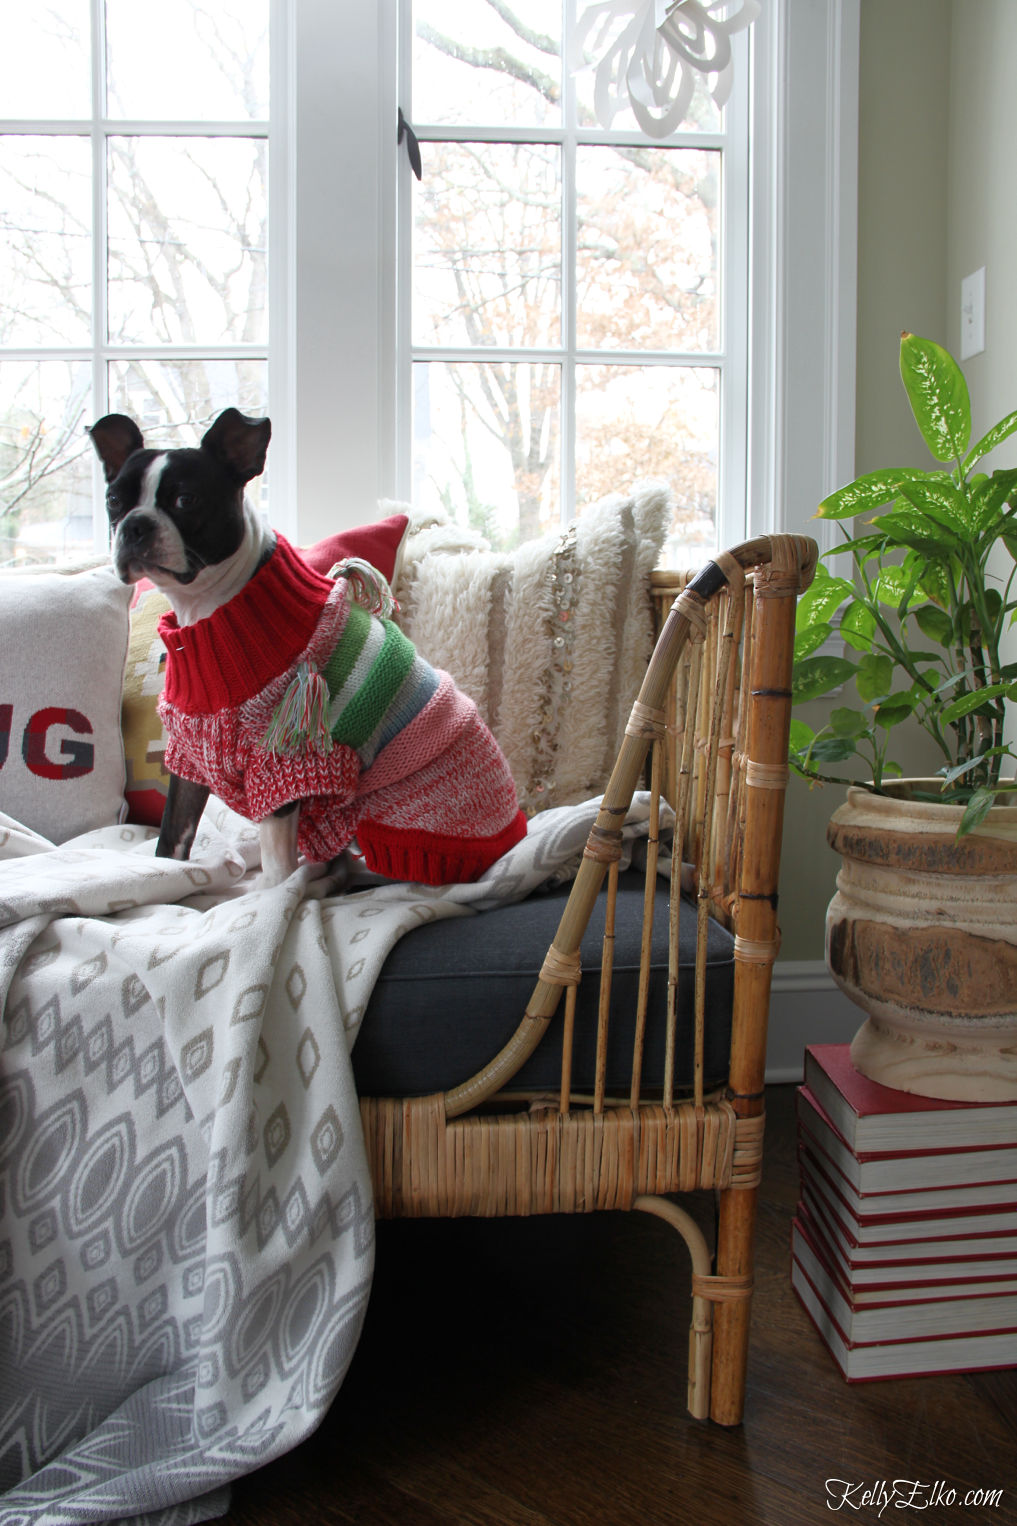 How cute is this little Boston Terrier in colorful sweater sitting on a rattan daybed kellyelko.com #bostonterrier #bohodecor #daybed #rattan #boho